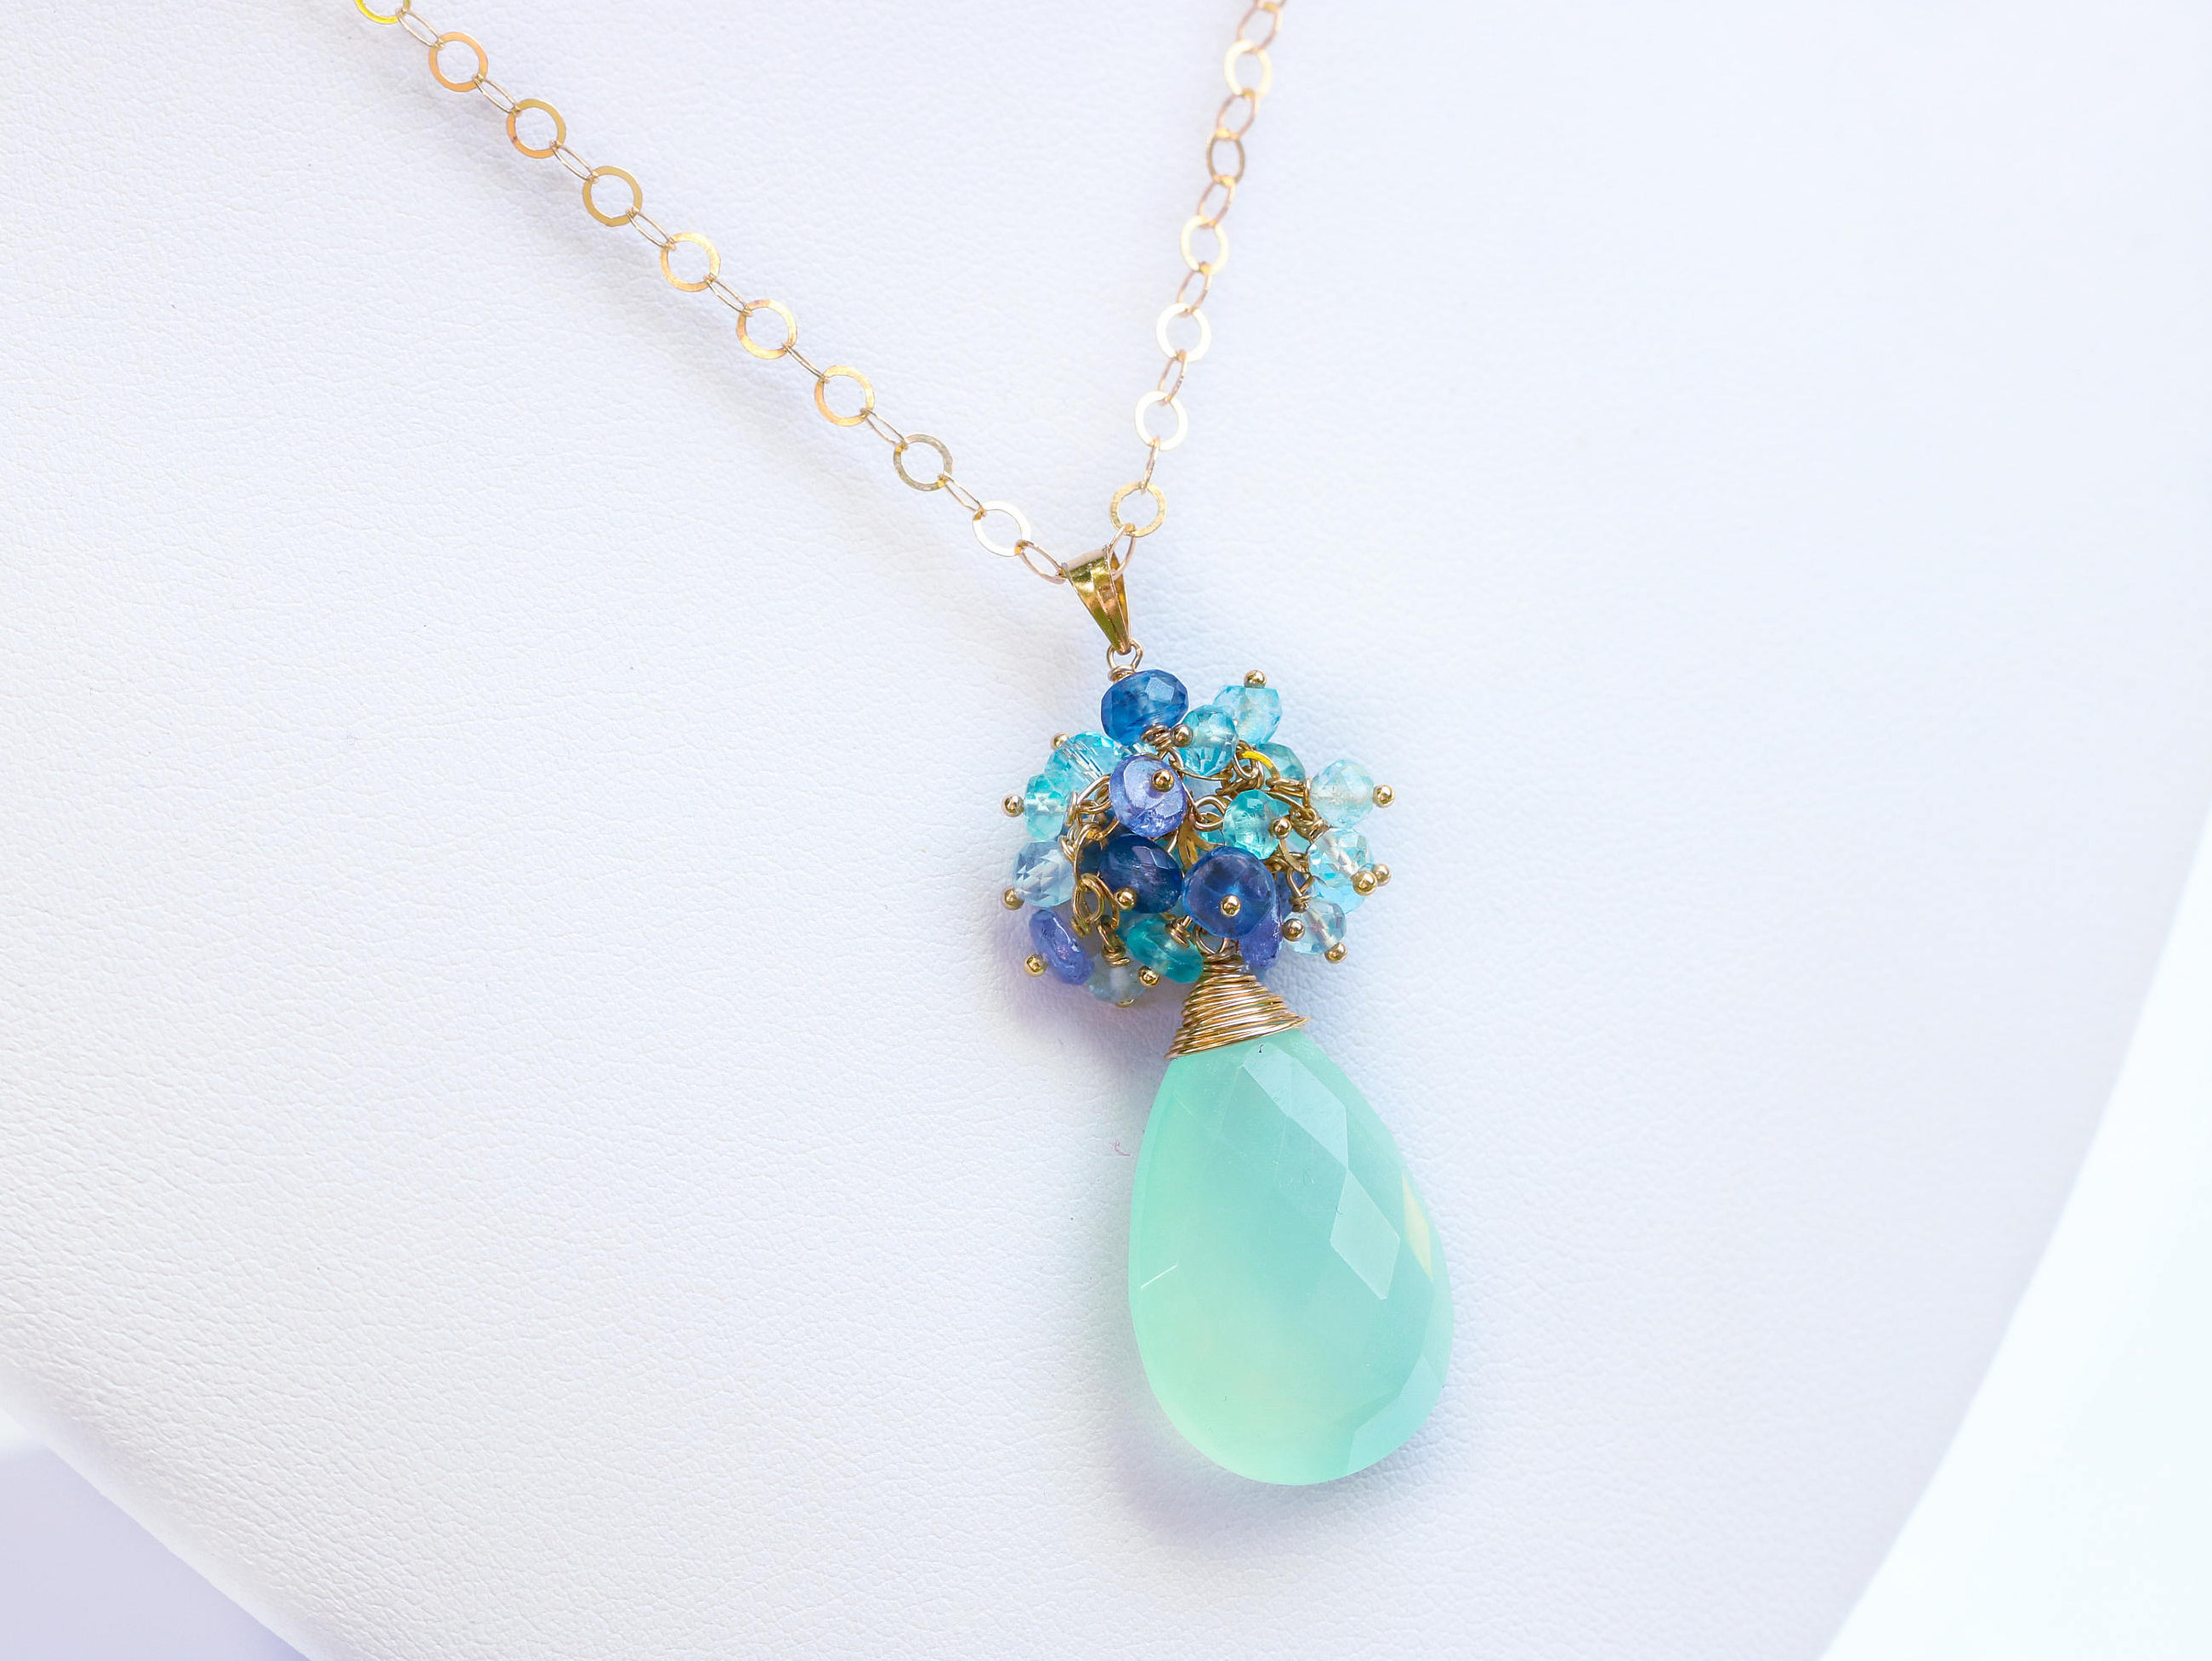 necklace gemstone blue tanzanite with beautiful apatite pendant topaz chalcedony and